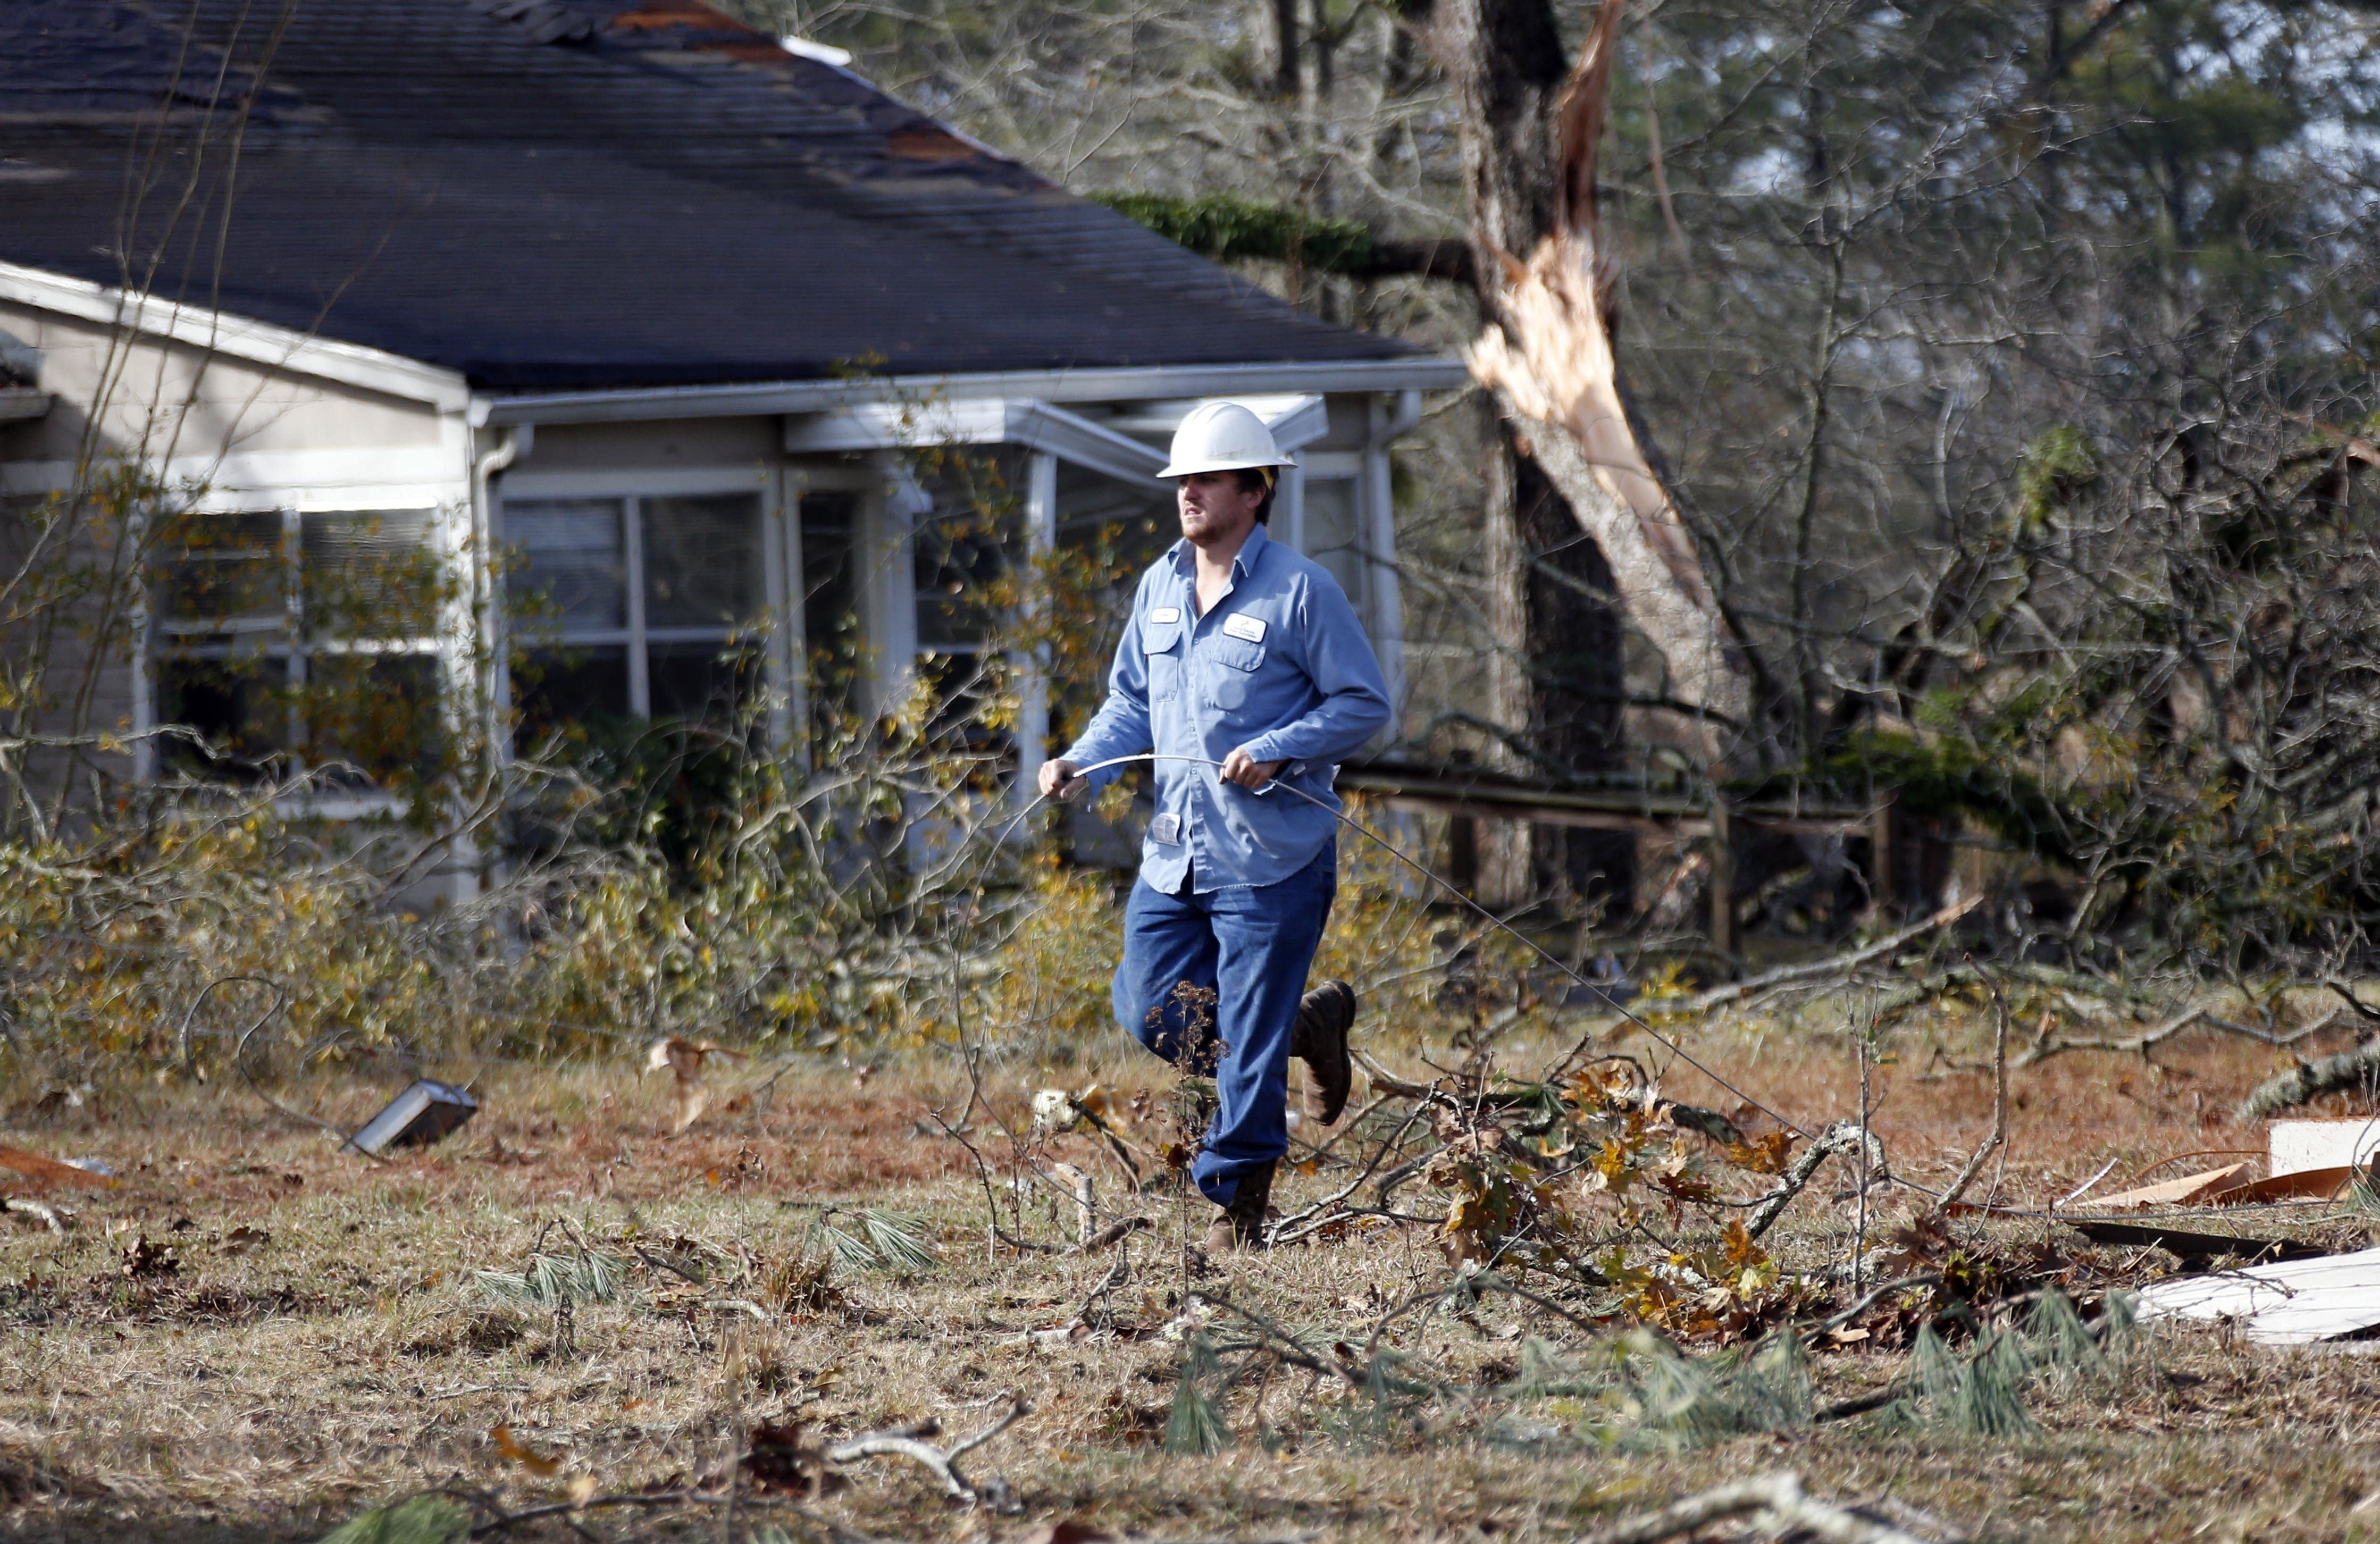 Deadly Tornadoes are the Latest in an Onslaught of Extreme Weather Plaguing Southern U.S.